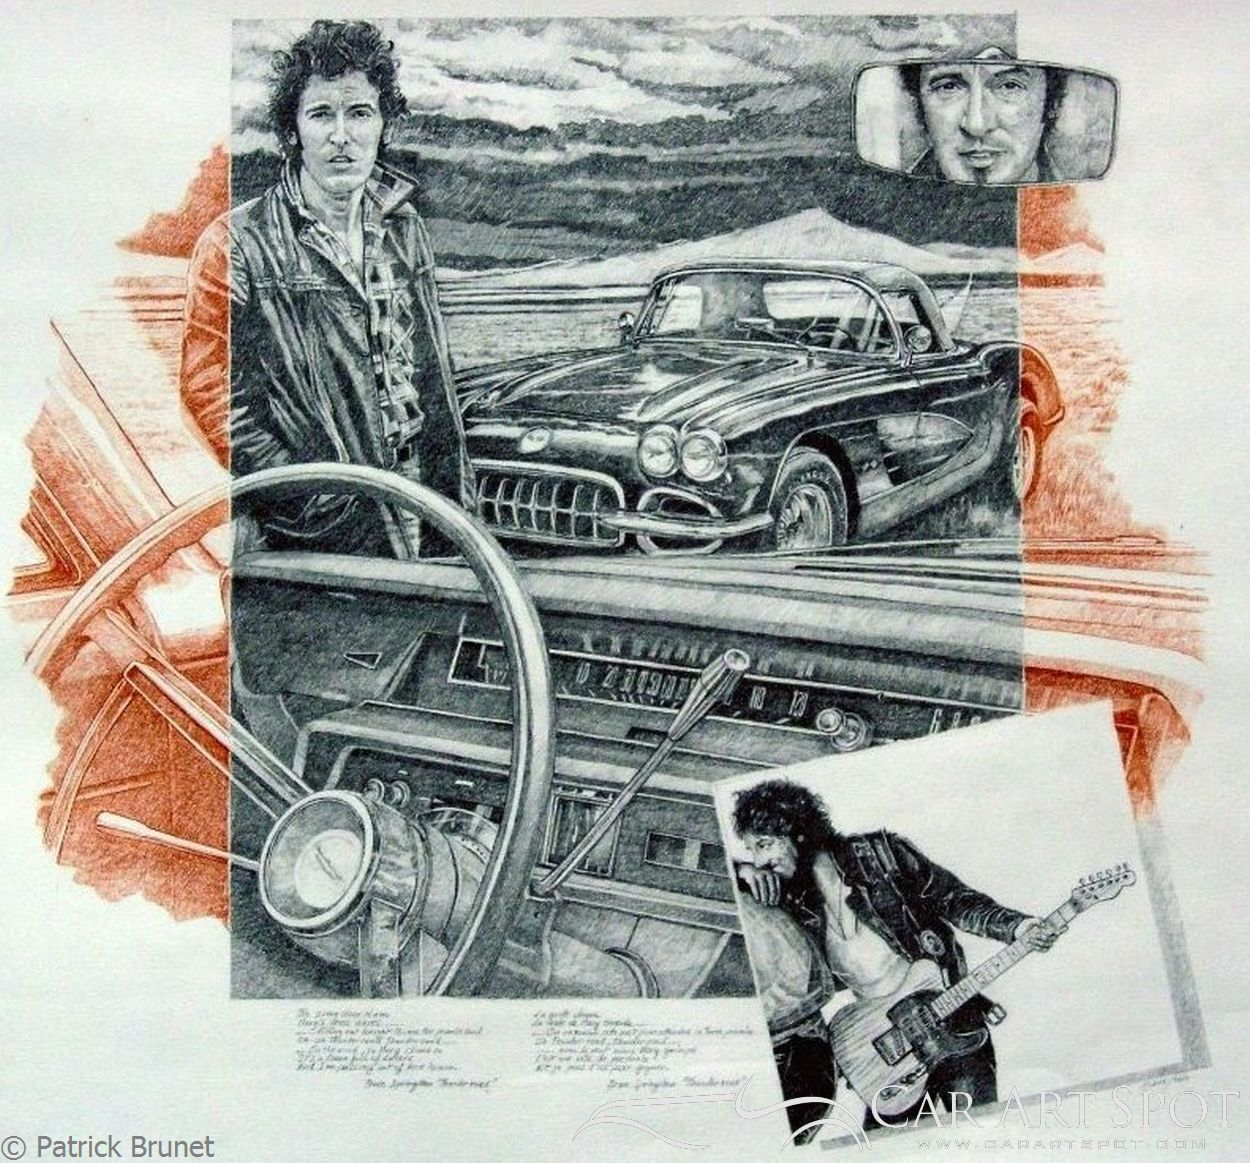 Bruce Springsteen Thunder road by Patrick Brunet